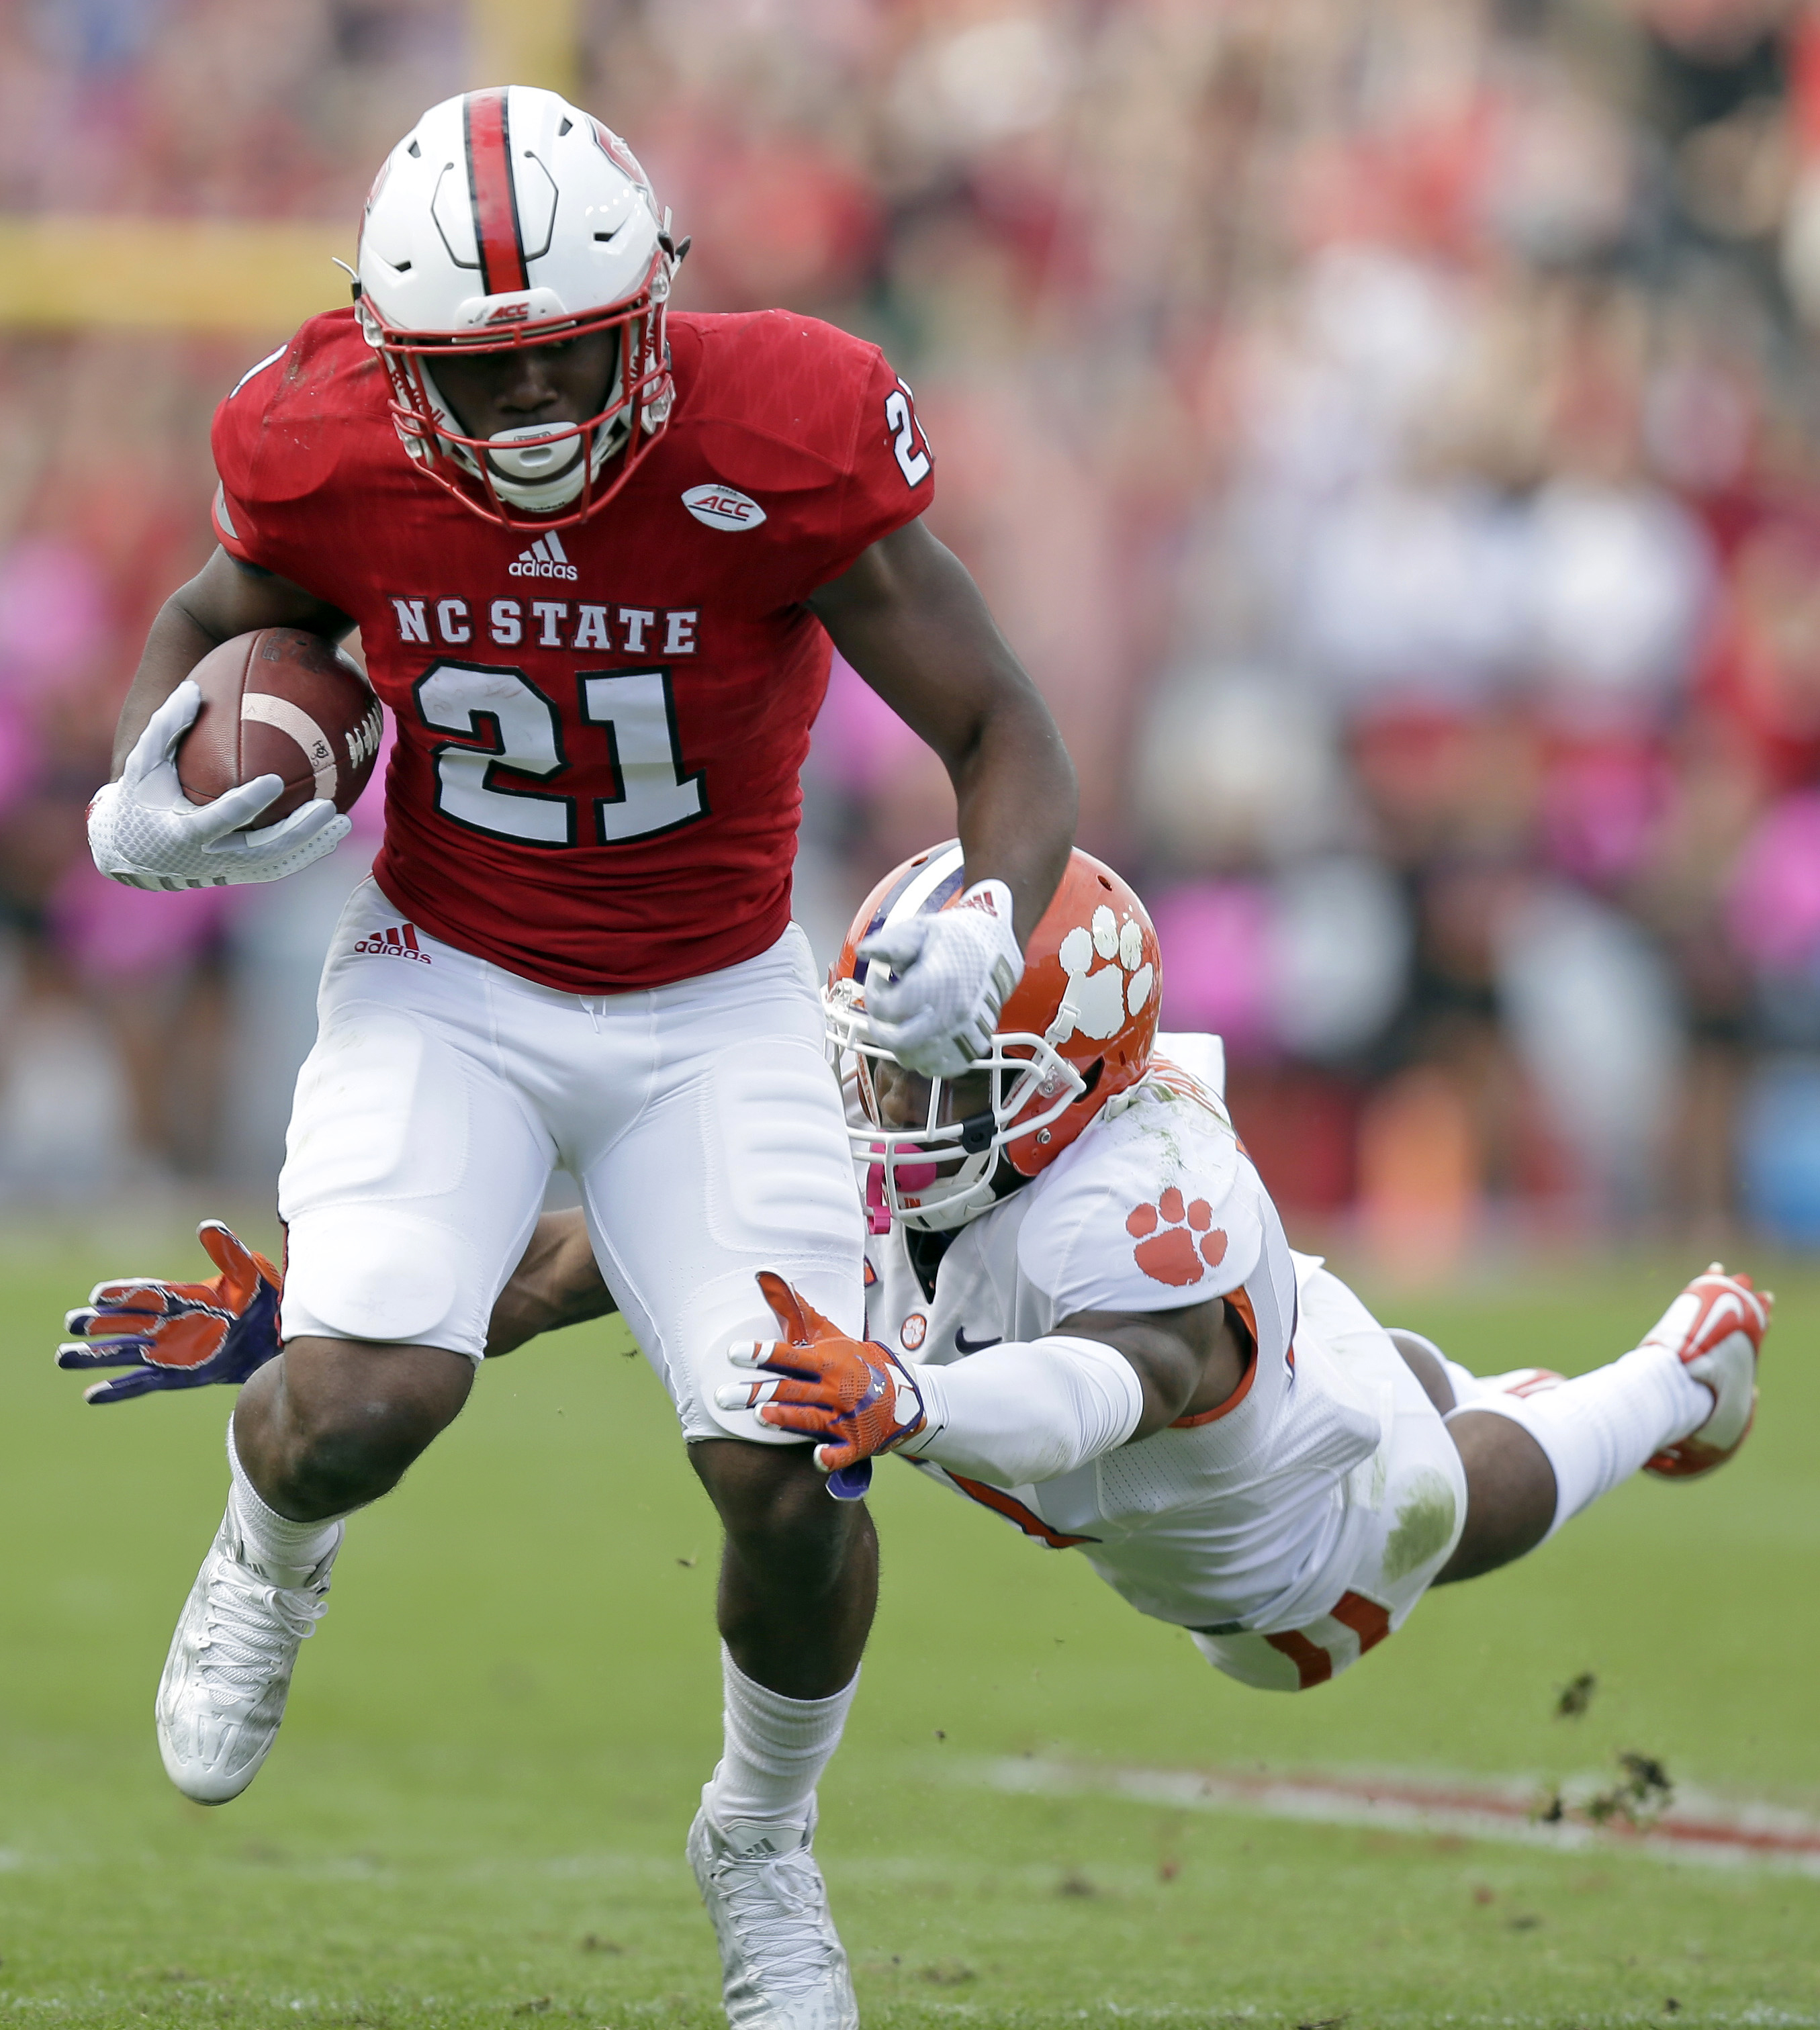 Clemson's Cordrea Tankersley, right. dives for North Carolina State's Matthew Dayes (21) during the first half of an NCAA college football game in Raleigh, N.C., Saturday, Oct. 31, 2015. (AP Photo/Gerry Broome)